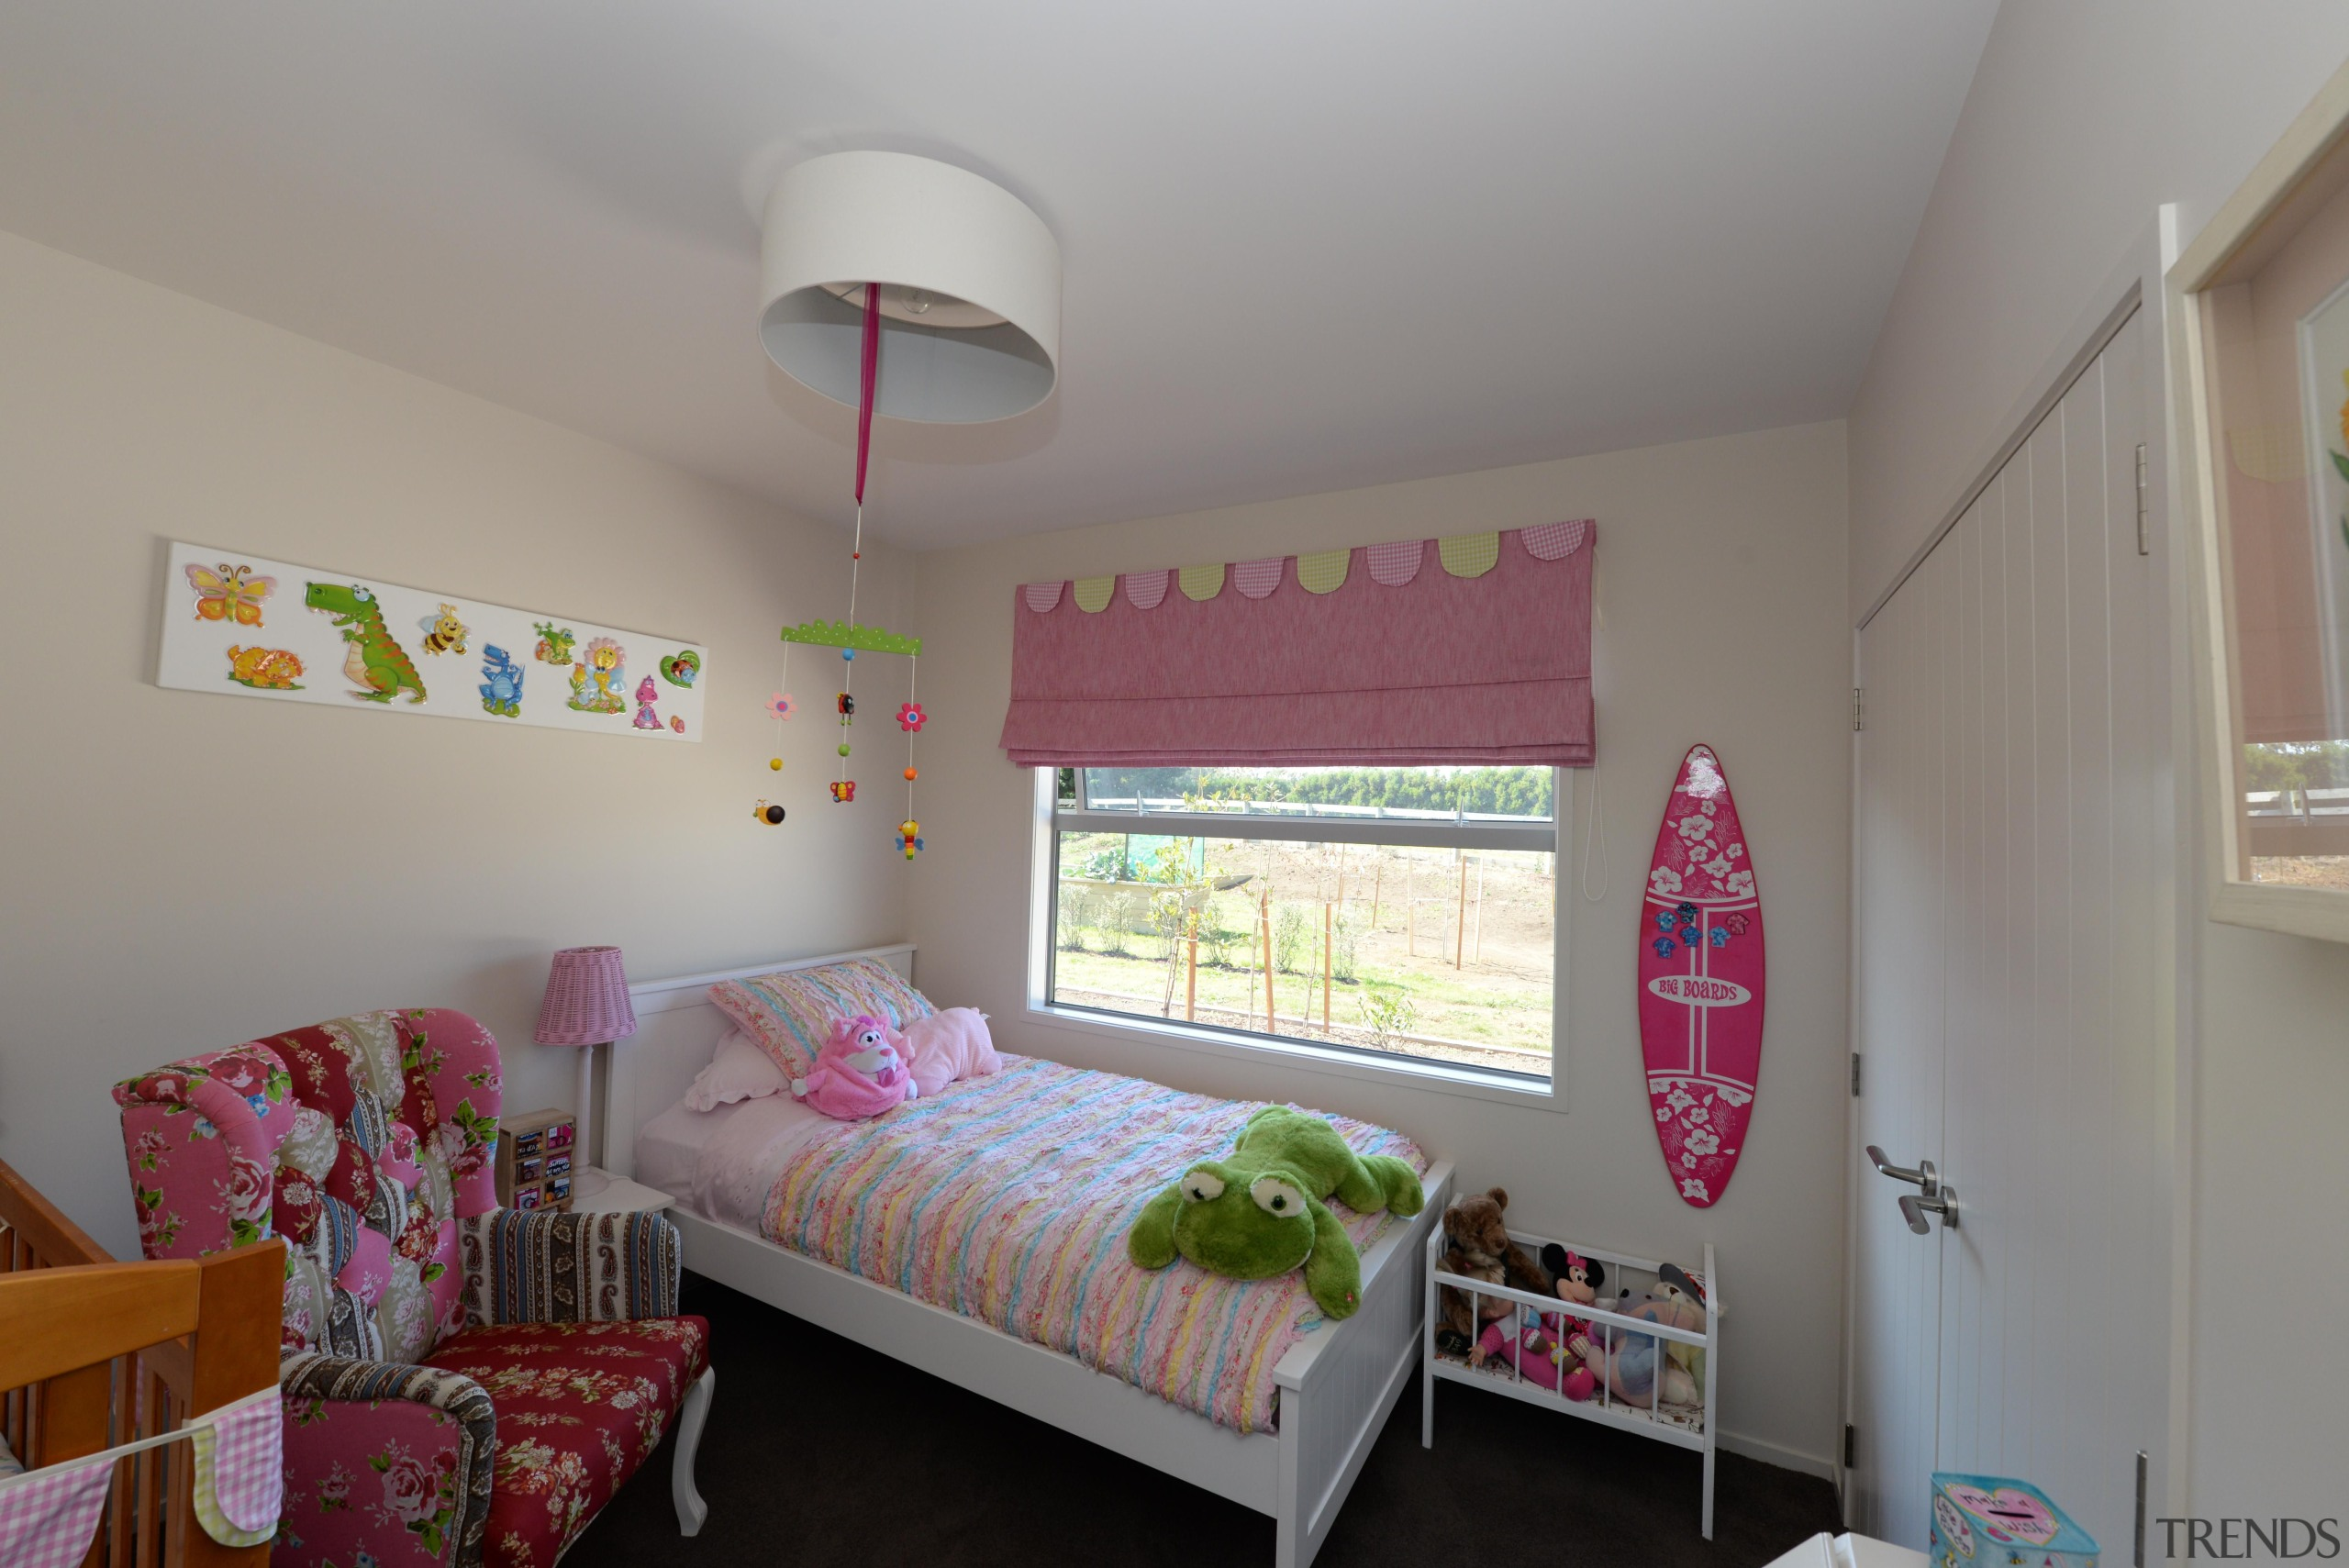 Kids bedroomBuilt by Fowler Homes TaranakiFor more information, bed, bedding, bedroom, ceiling, dormitory, home, house, interior design, product, property, real estate, room, gray